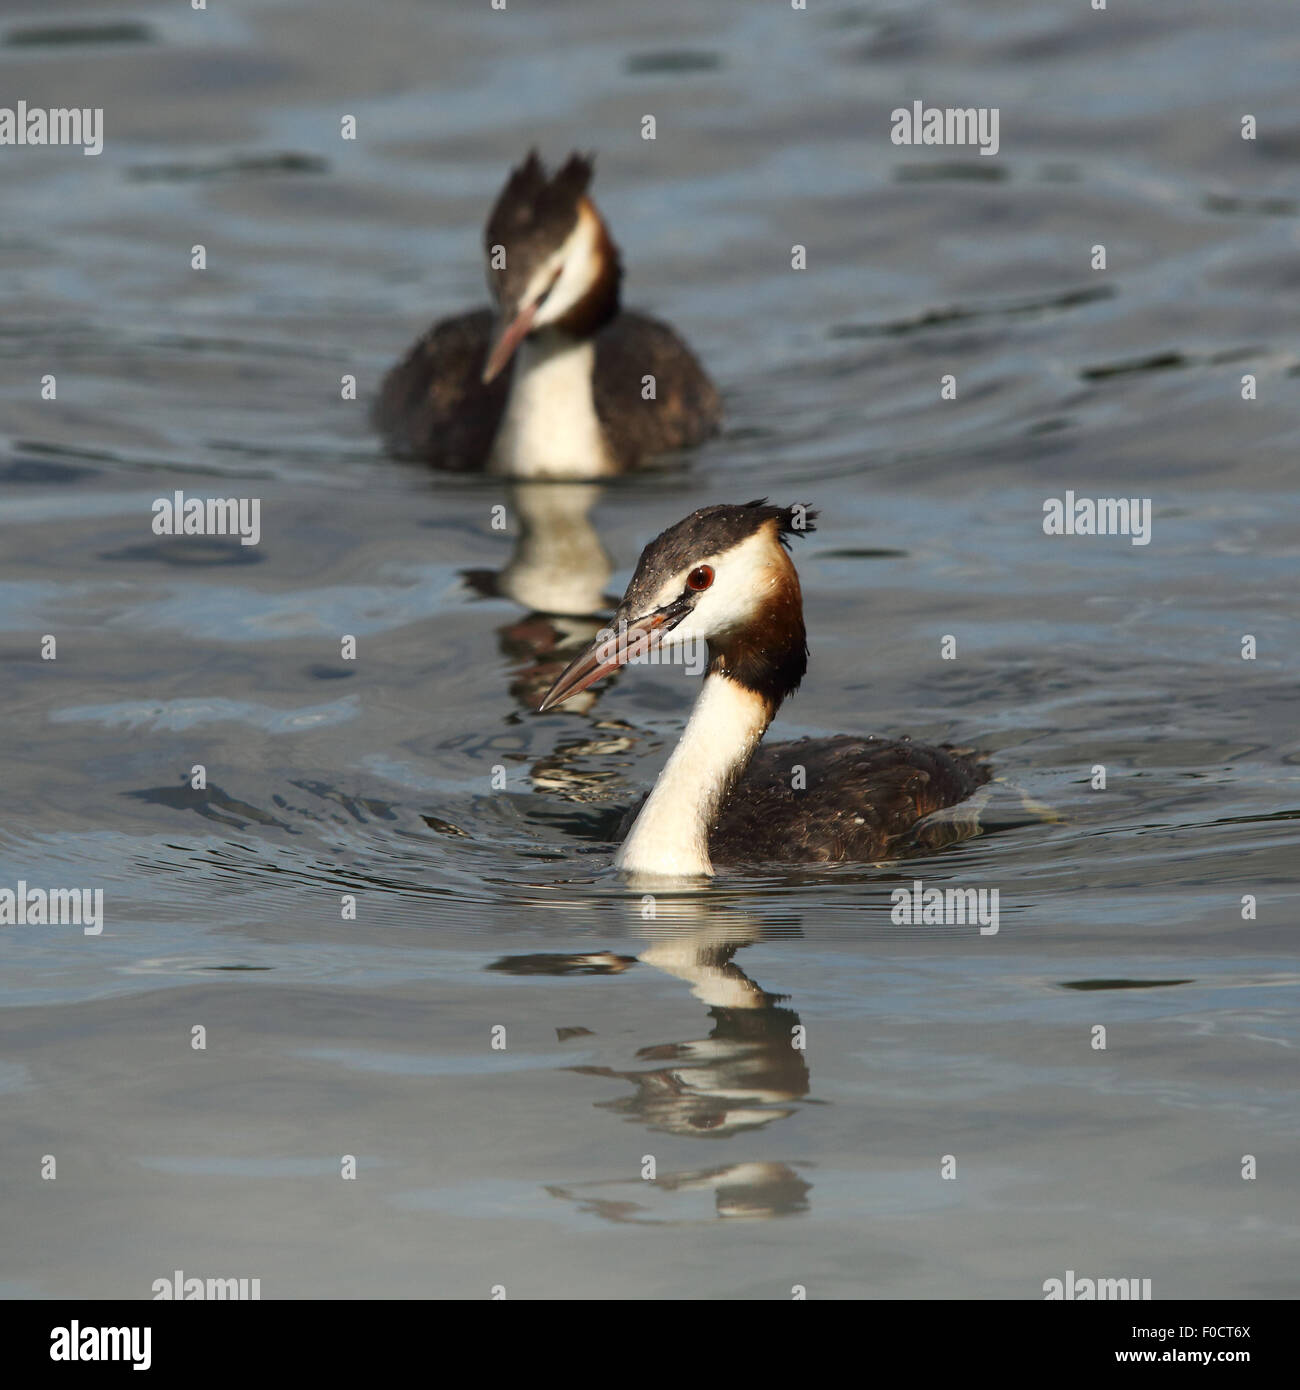 A couple of Great Crested Grebes swimming towards me - Stock Image